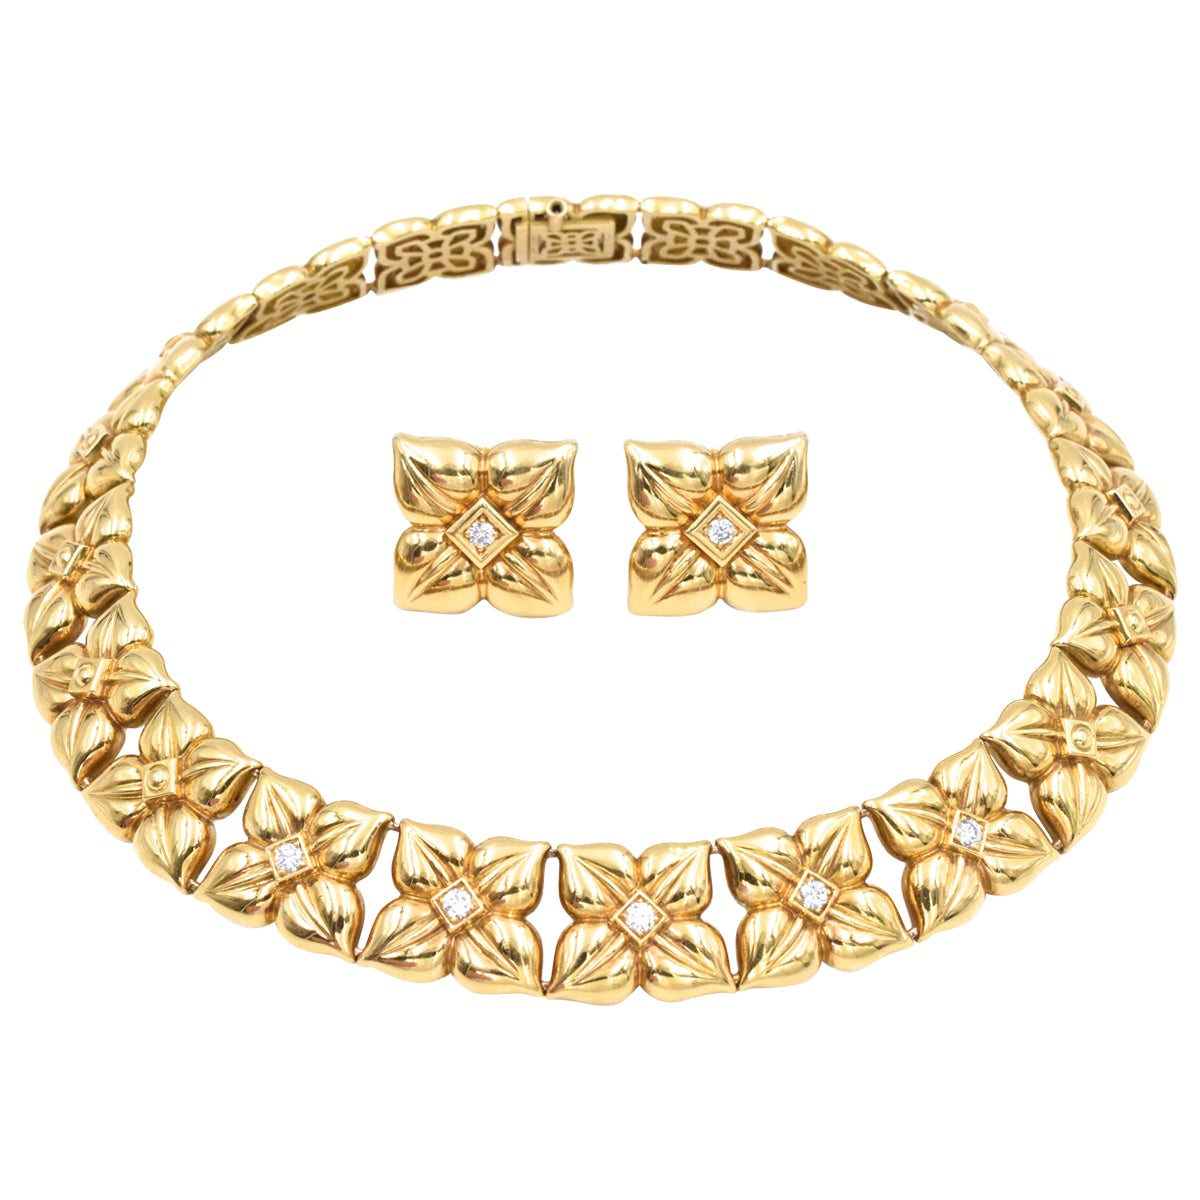 French, Van Cleef & Arpels Gold and Diamond Necklace and Earrings